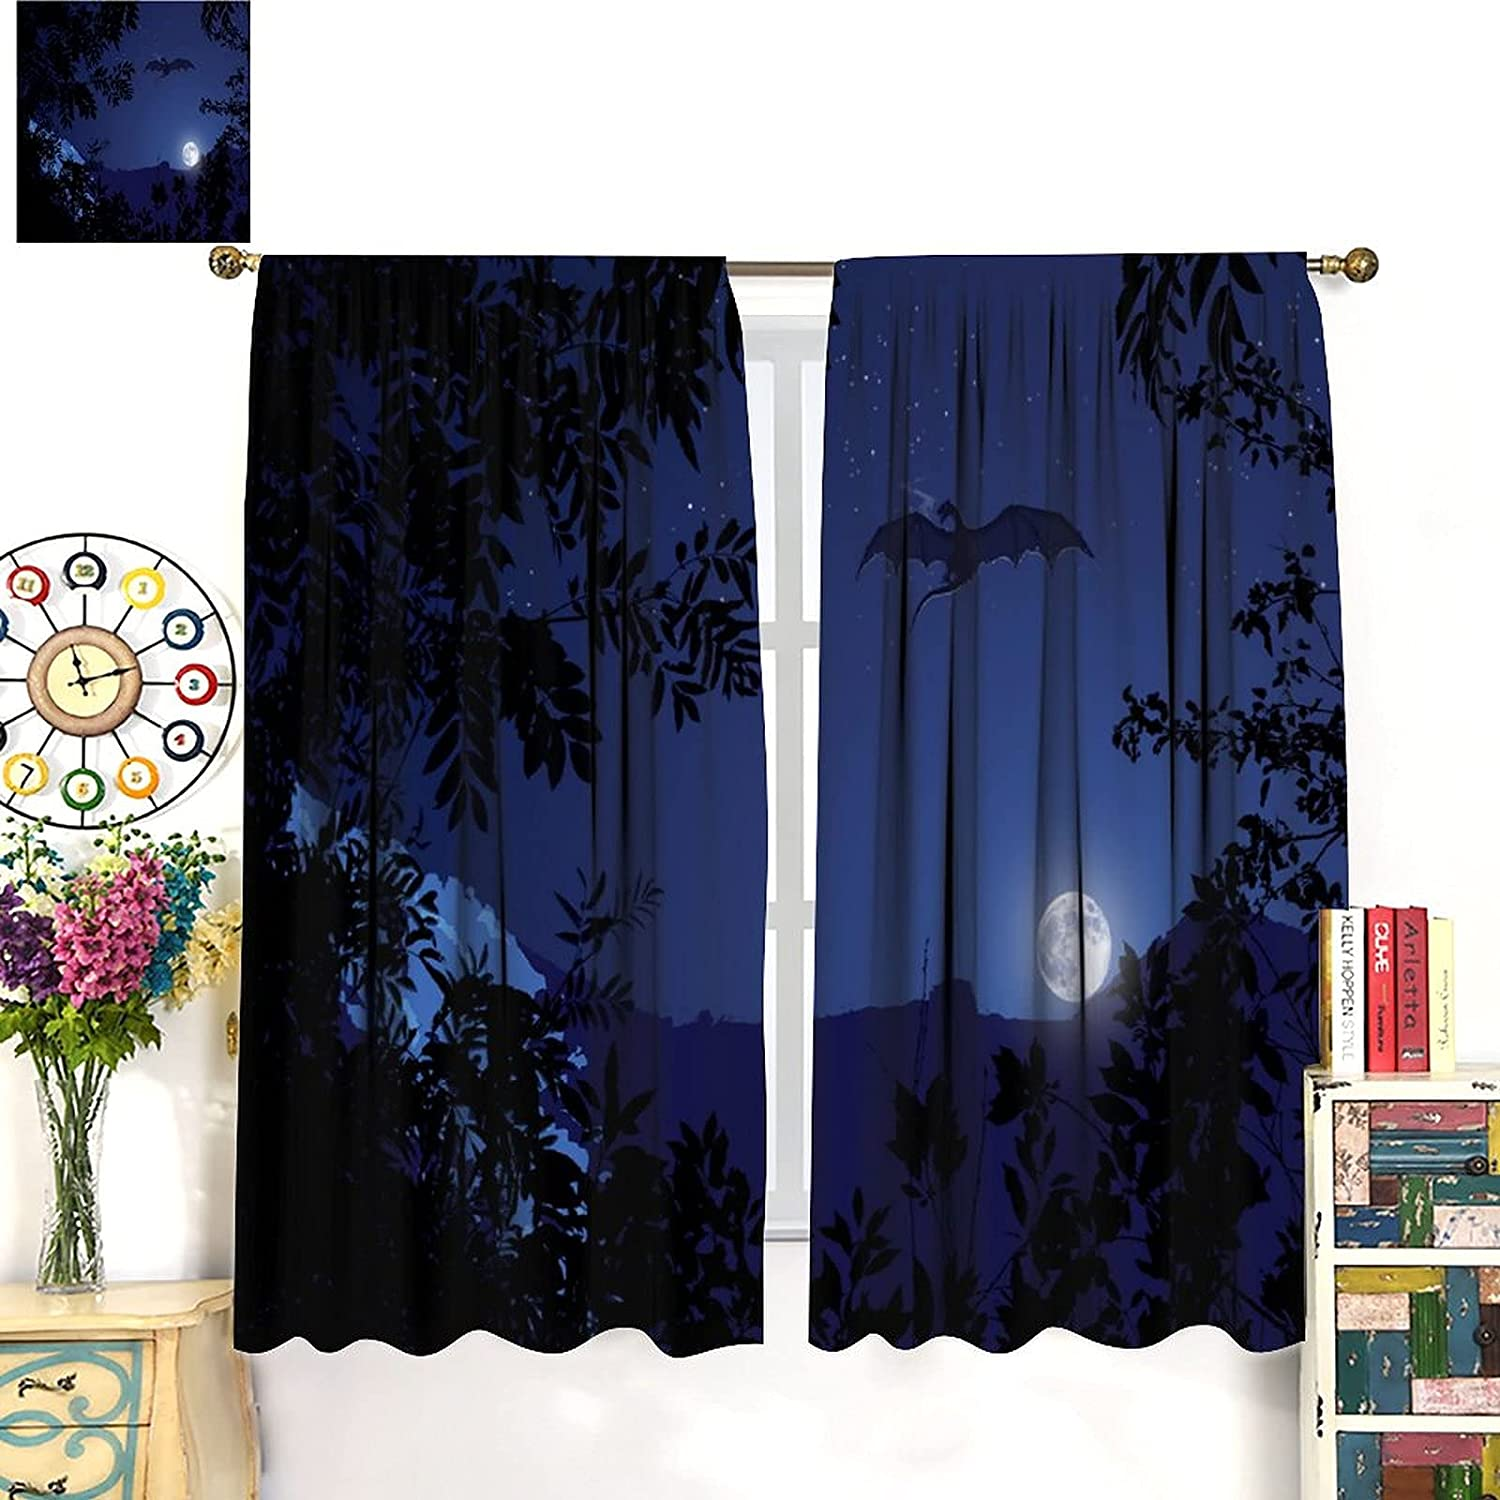 Dragon Blackout Curtains 2021new shipping free Full Latest item Moon Scene and Night Flying